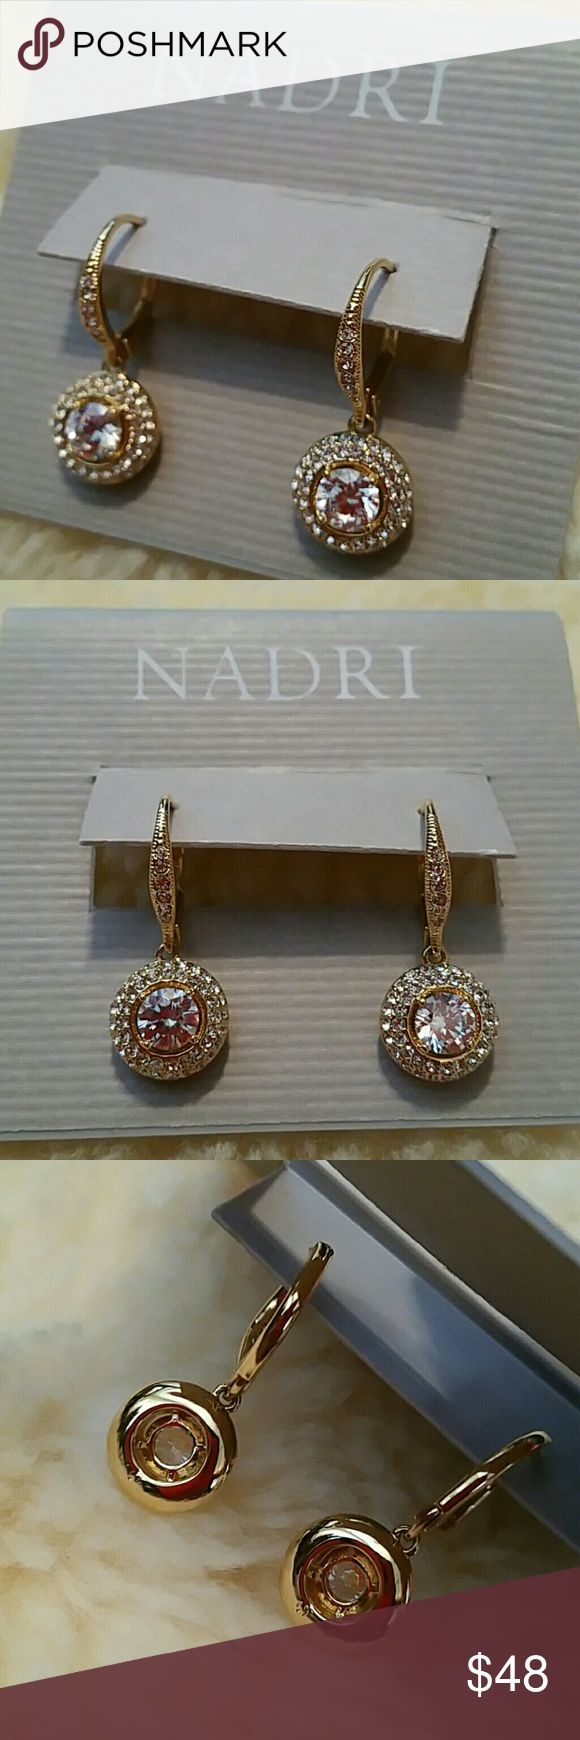 "Nadri 18K gold CZ crystal drop leverback earrings Nordstrom Nadri 18K gold CZ crystal drop leverback earrings 6mm prong set CZ framed with pave crystal encrusted circle dangles Crystal encrusted Euro-wire leverbacks Approx 1"" overall drop, 1/2"" diameter dangle Brand new and unused with earring card Will ship in a decorative organza giftbag Nadri Jewelry Earrings"